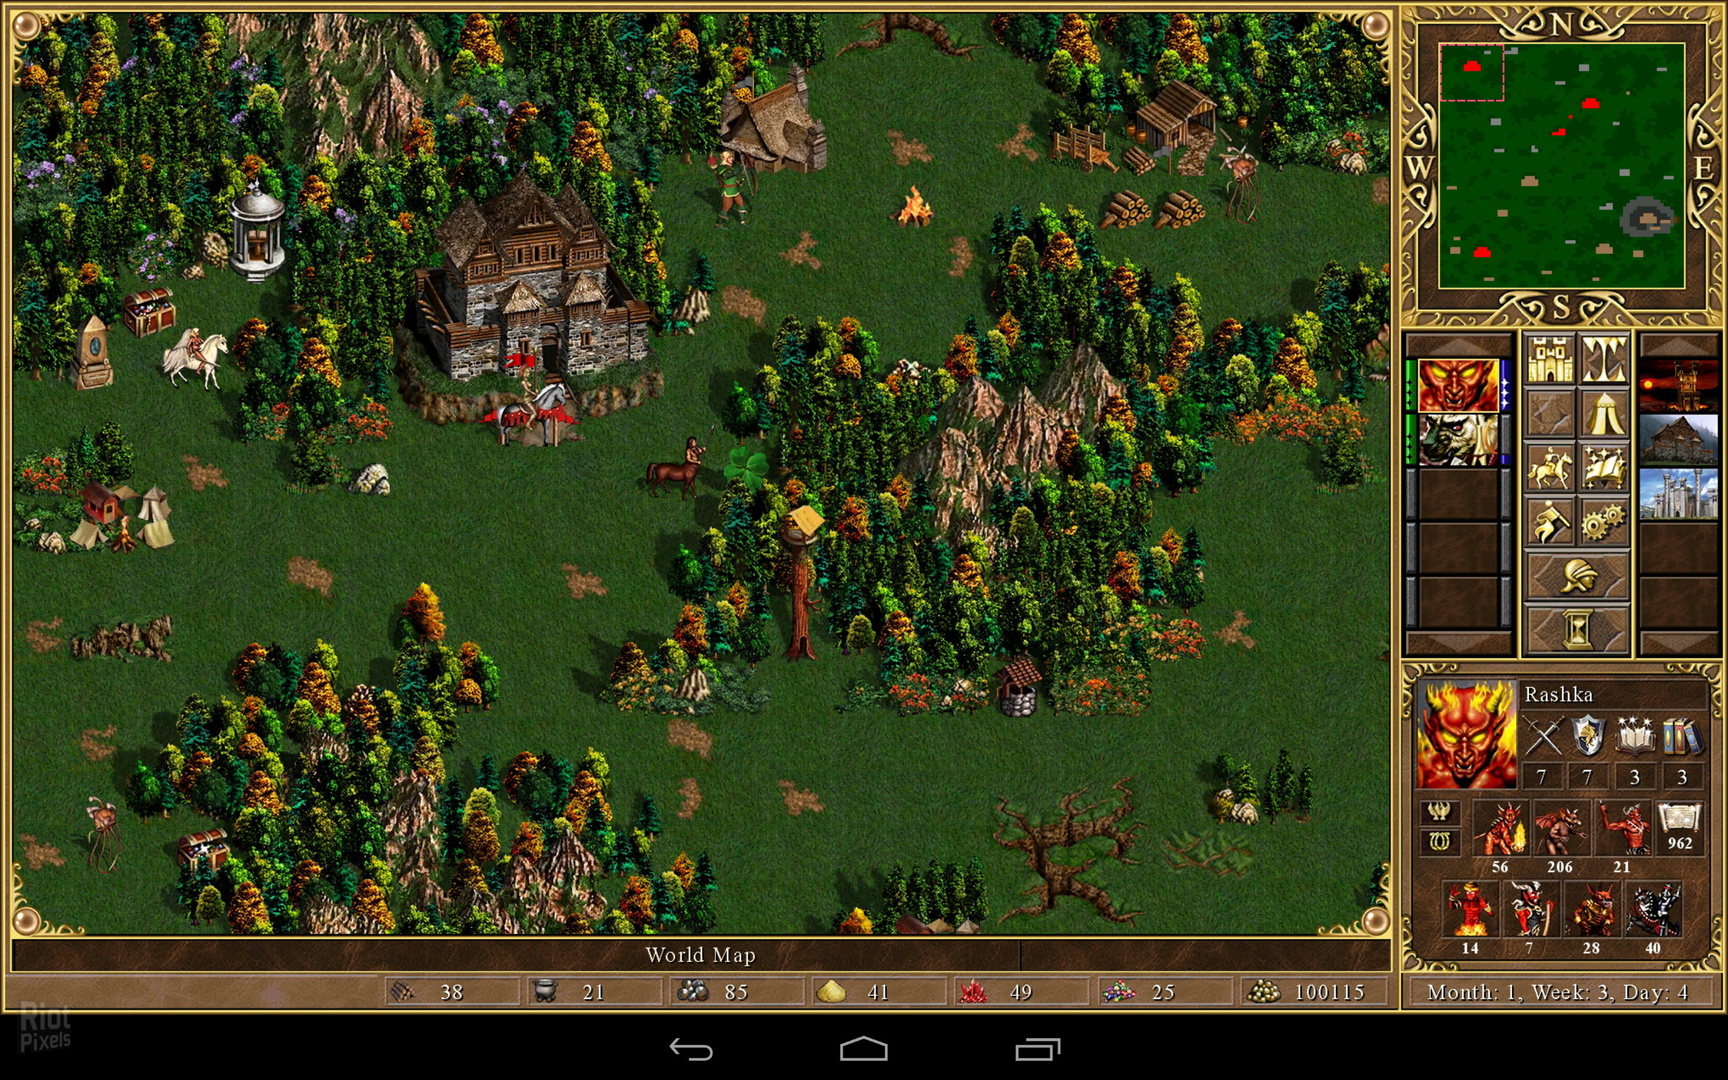 screenshot_heroes-of-might-and-magic-3-hd-edition_1728x1080_2014-12-10_20.jpg